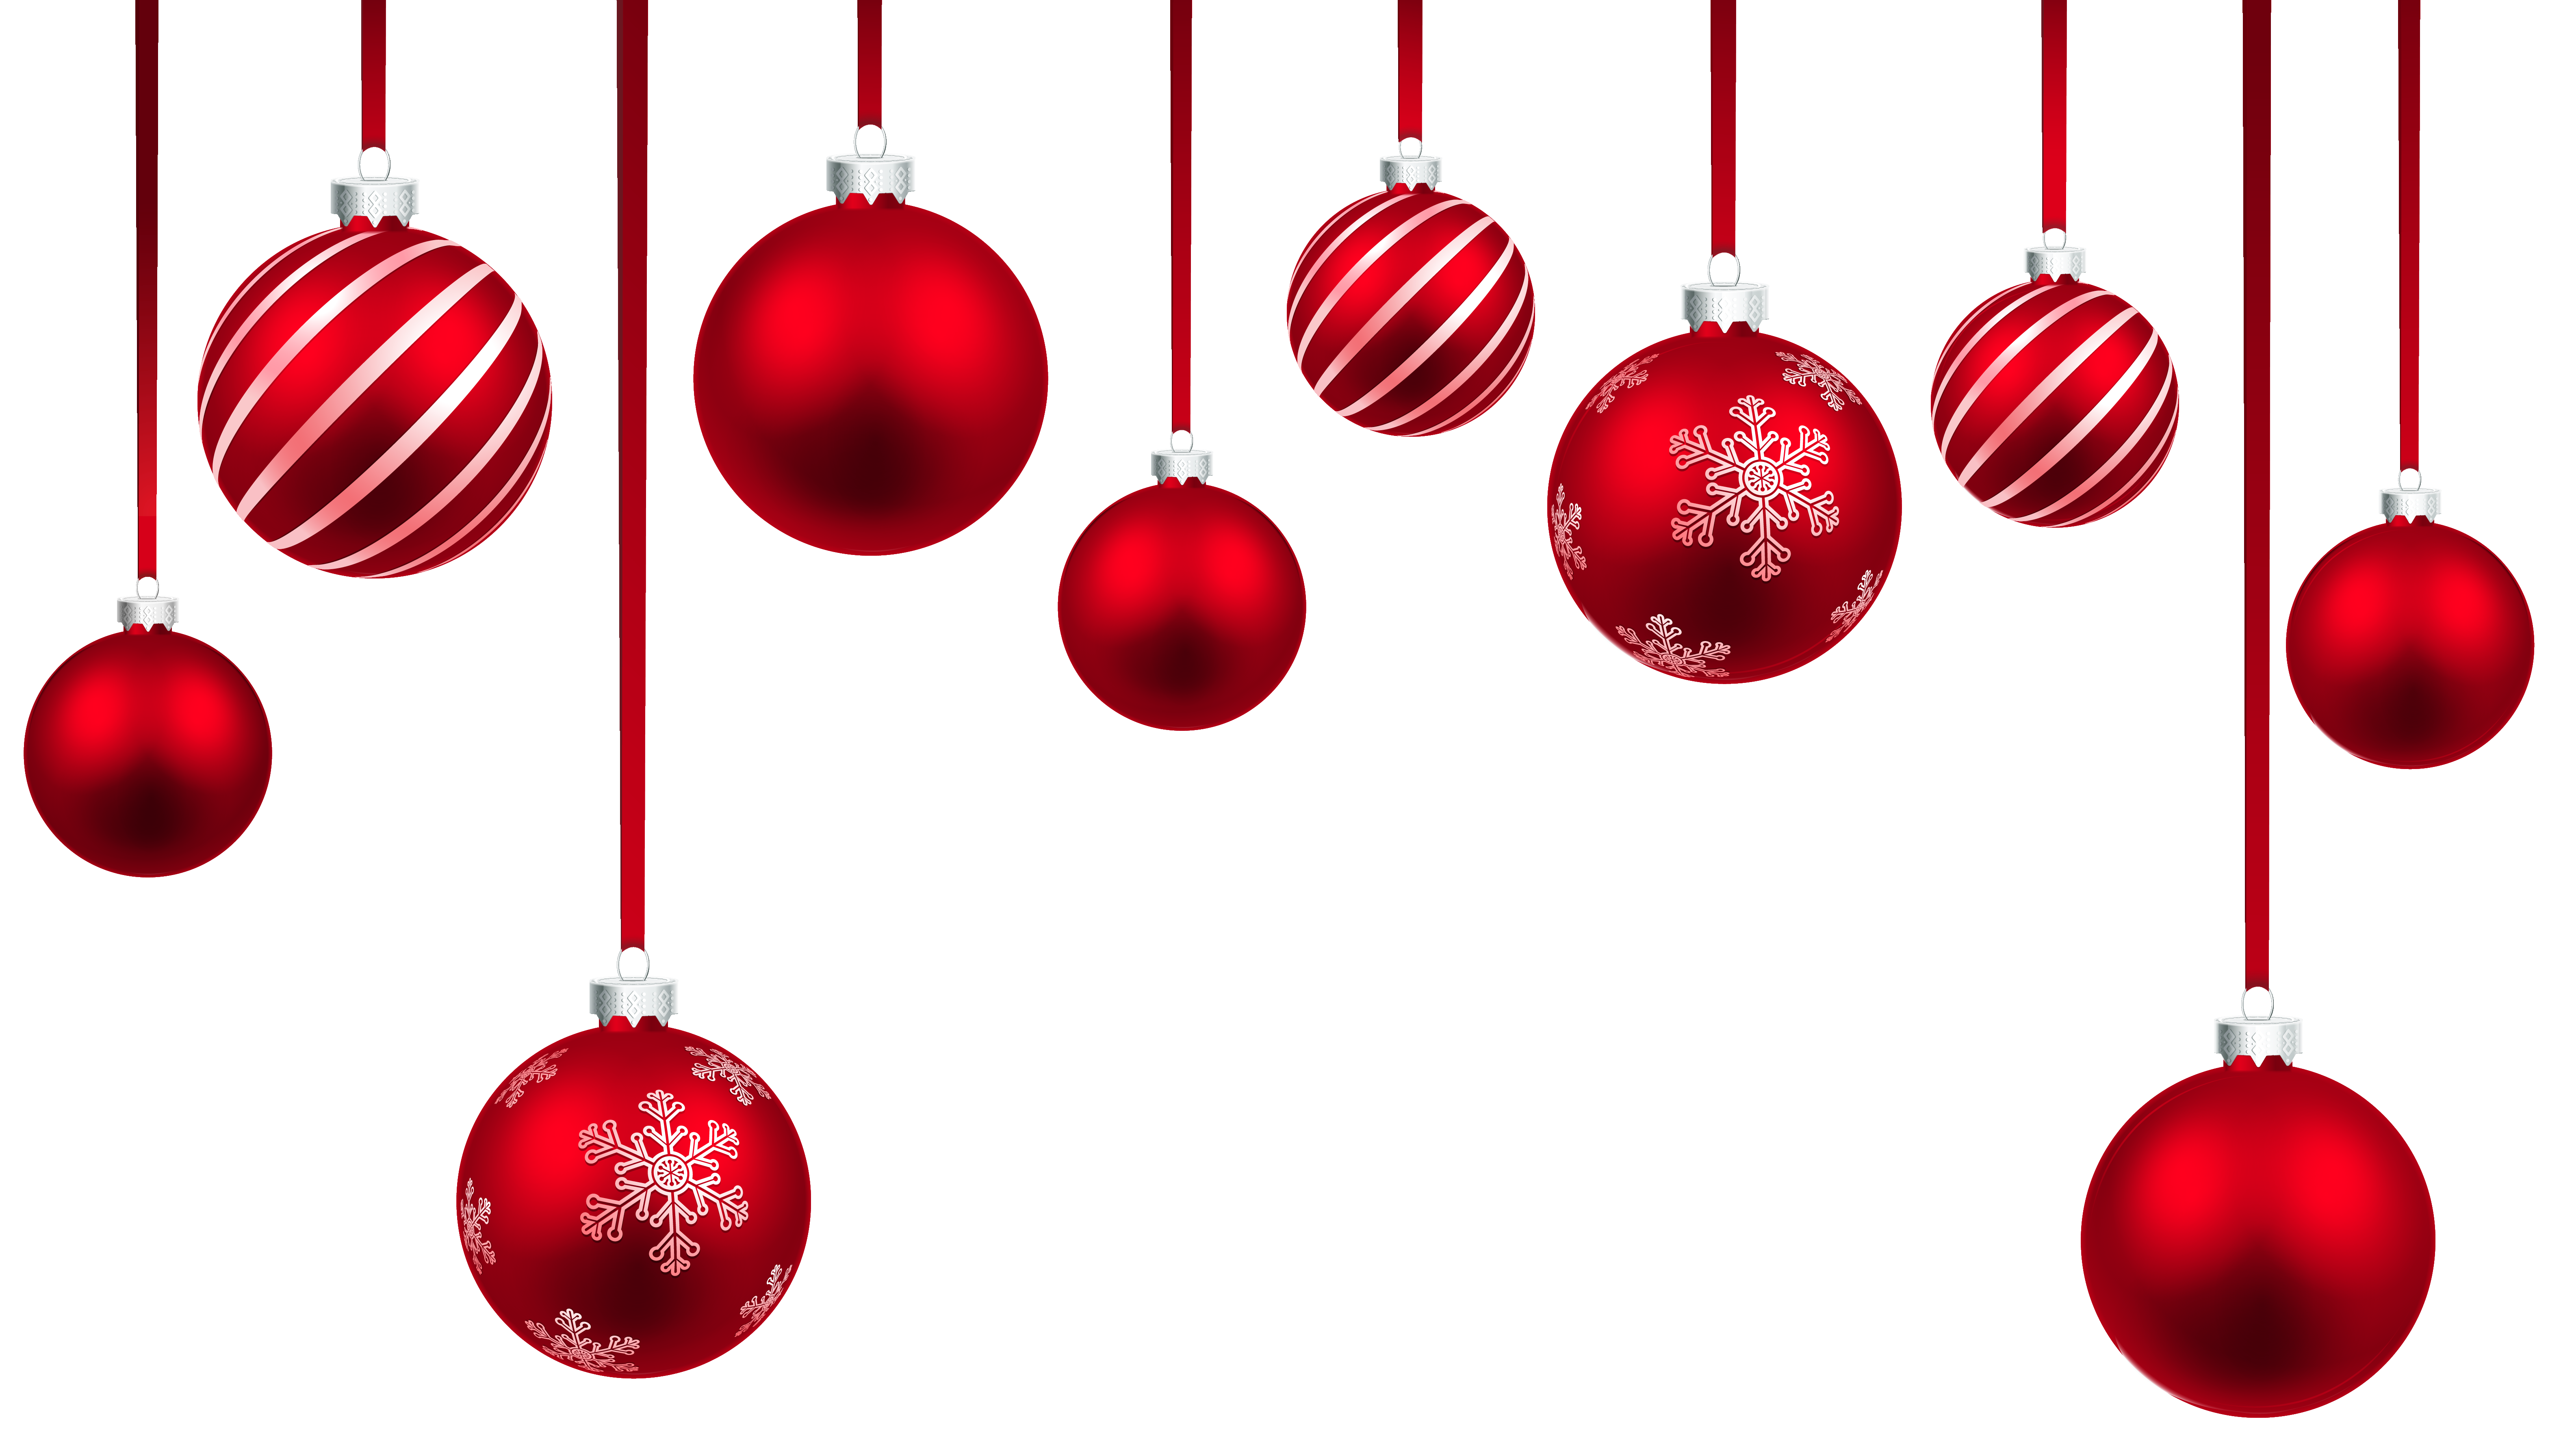 Red Christmas Hanging Balls Decor PNG Clipart Image.